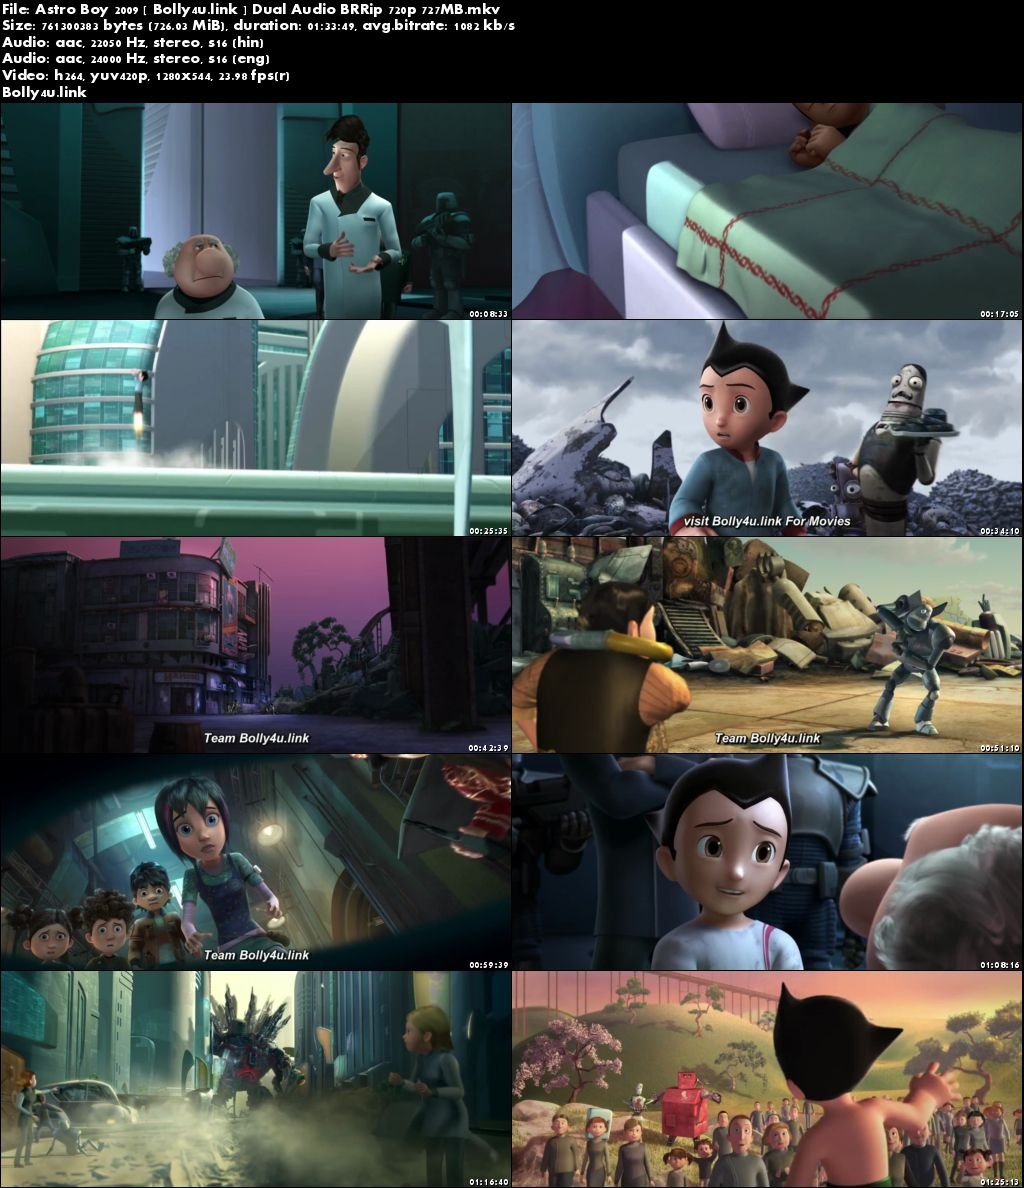 Astro Boy 2009 BRRip 700MB Hindi Dual Audio 720p Download